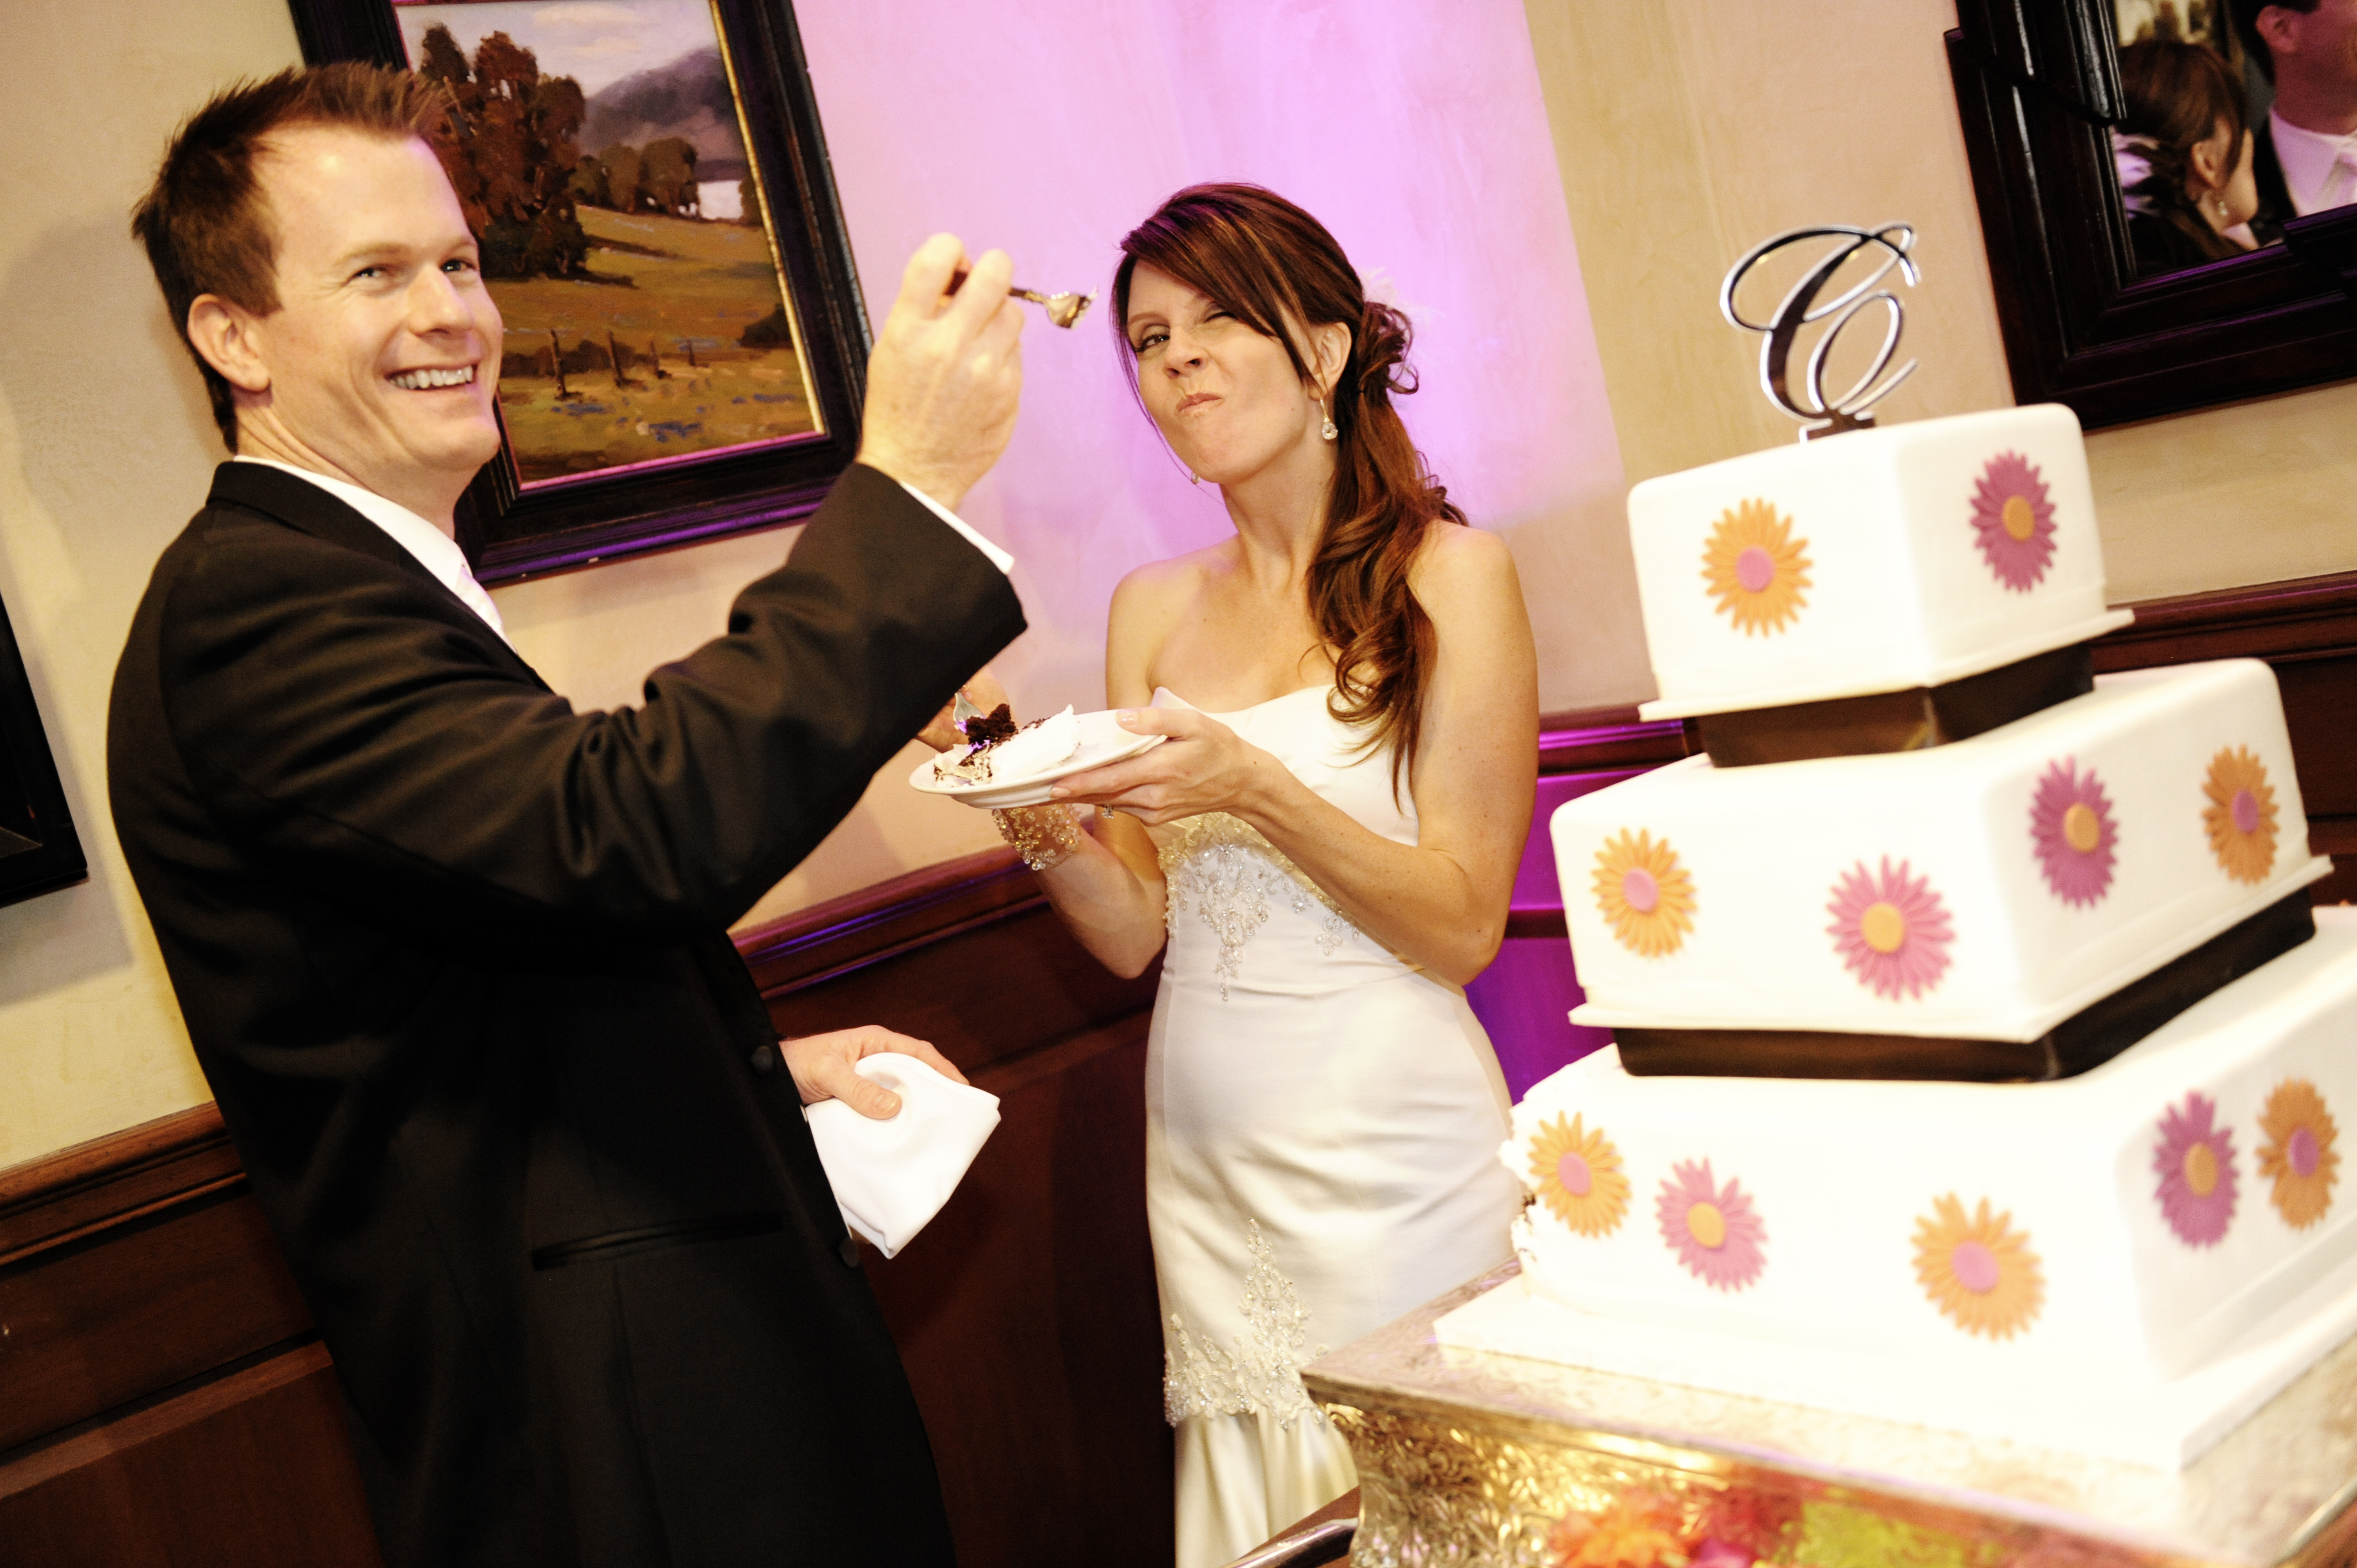 Cakes, orange, pink, brown, cake, Modern, Modern Wedding Cakes, Square Wedding Cakes, Square